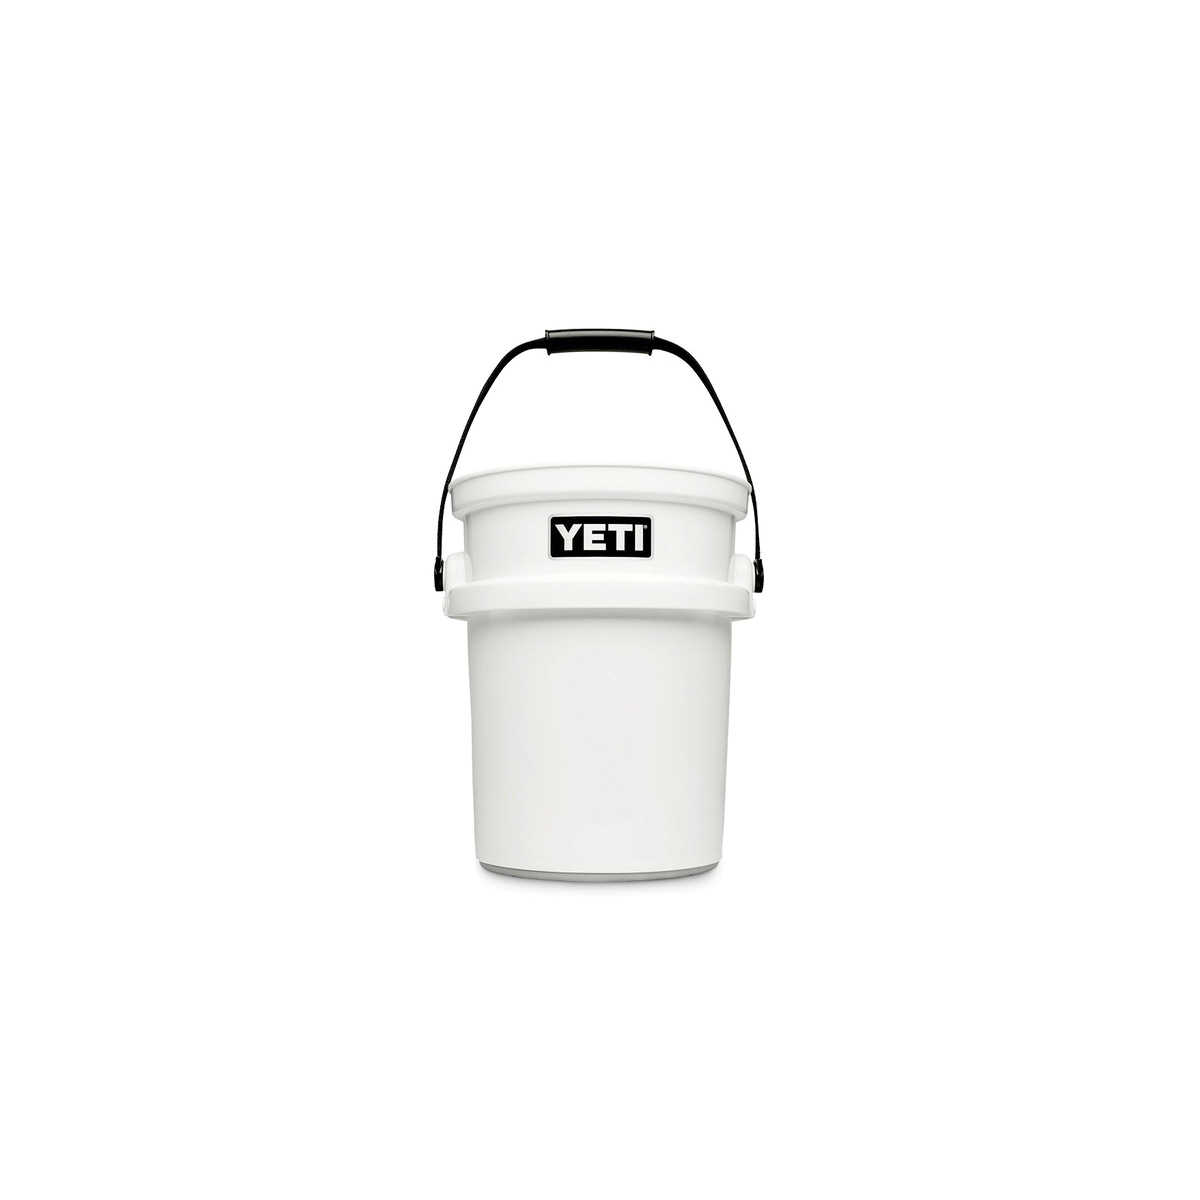 Picture of YETI LoadOut 26010000010 Bucket, 5 gal Capacity, 10-1/4 to 12-7/8 in Dia, HDPE, White